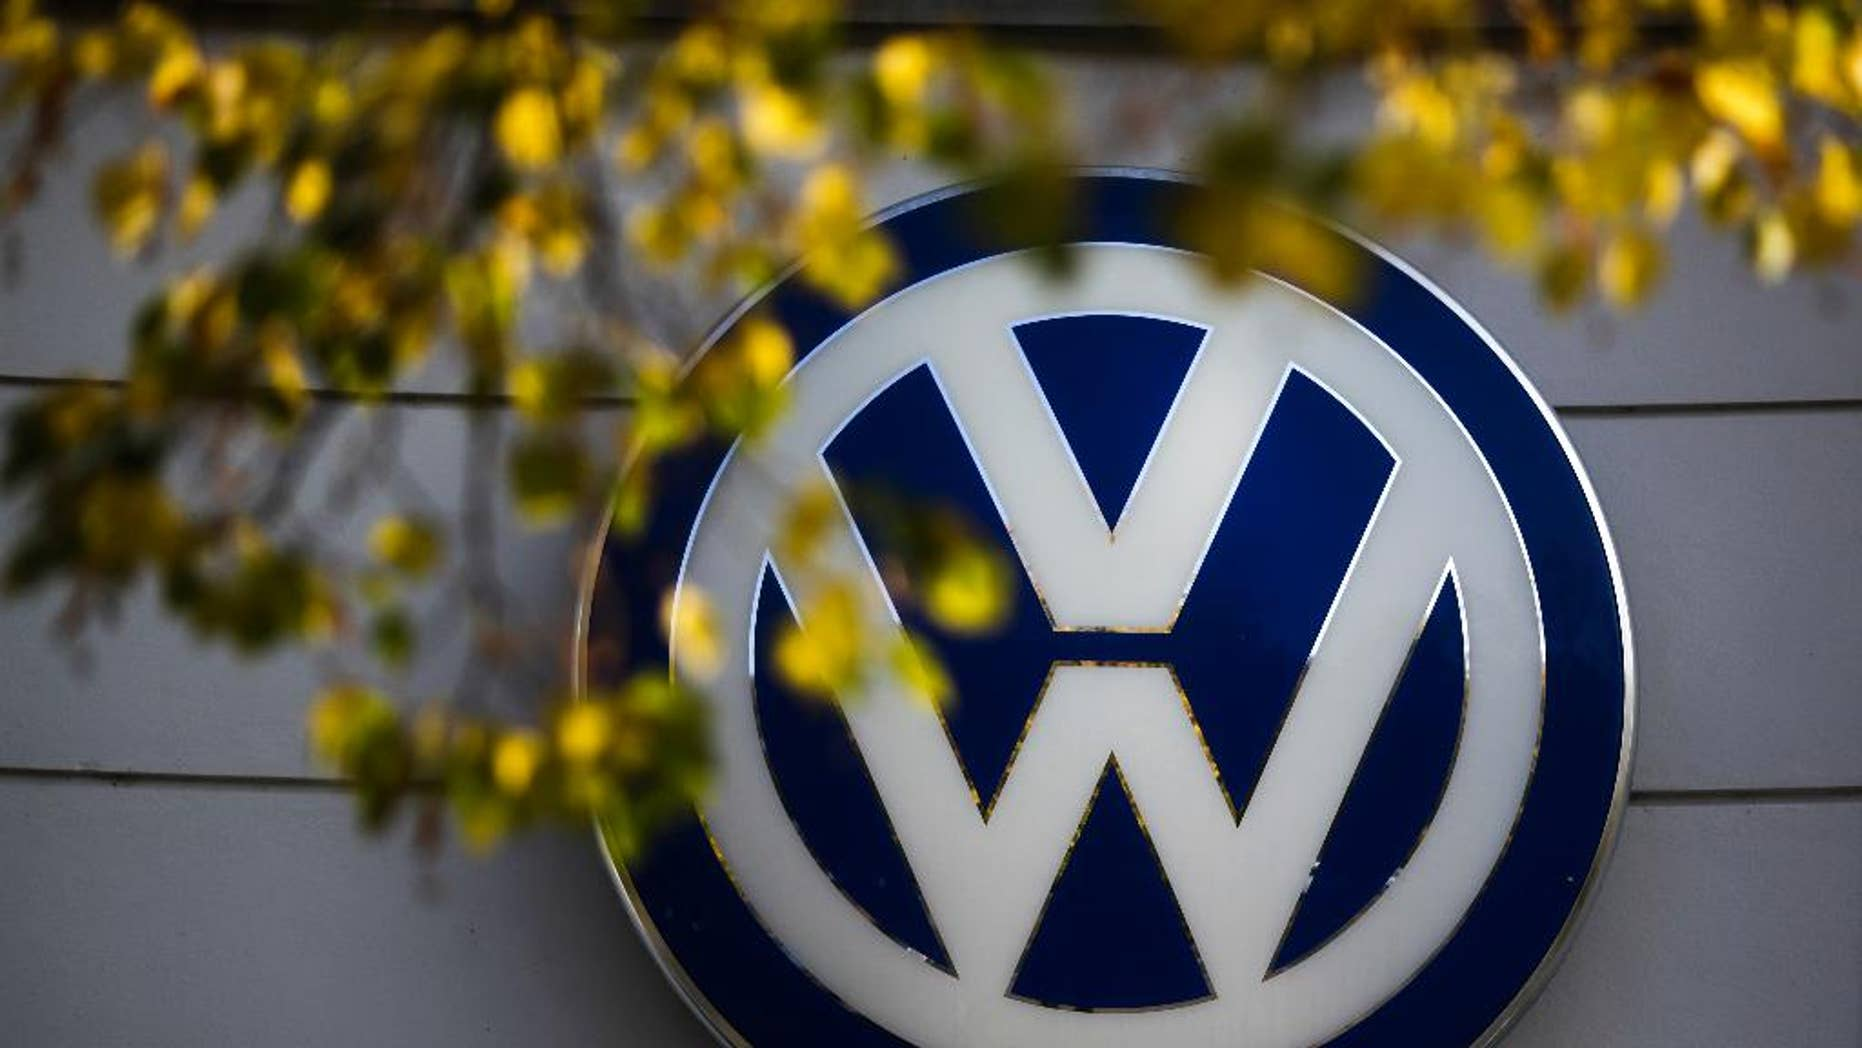 FILE - In this Oct. 5, 2015, file photo, the VW sign of Germany's Volkswagen car company is displayed at the building of a company's retailer in Berlin. A member of Volkswagen's supervisory board is calling for a quick solution to a legal dispute between the automaker and two suppliers that has forced VW to suspend production of some models at German plants, affecting nearly 28,000 workers. (AP Photo/Markus Schreiber, File)